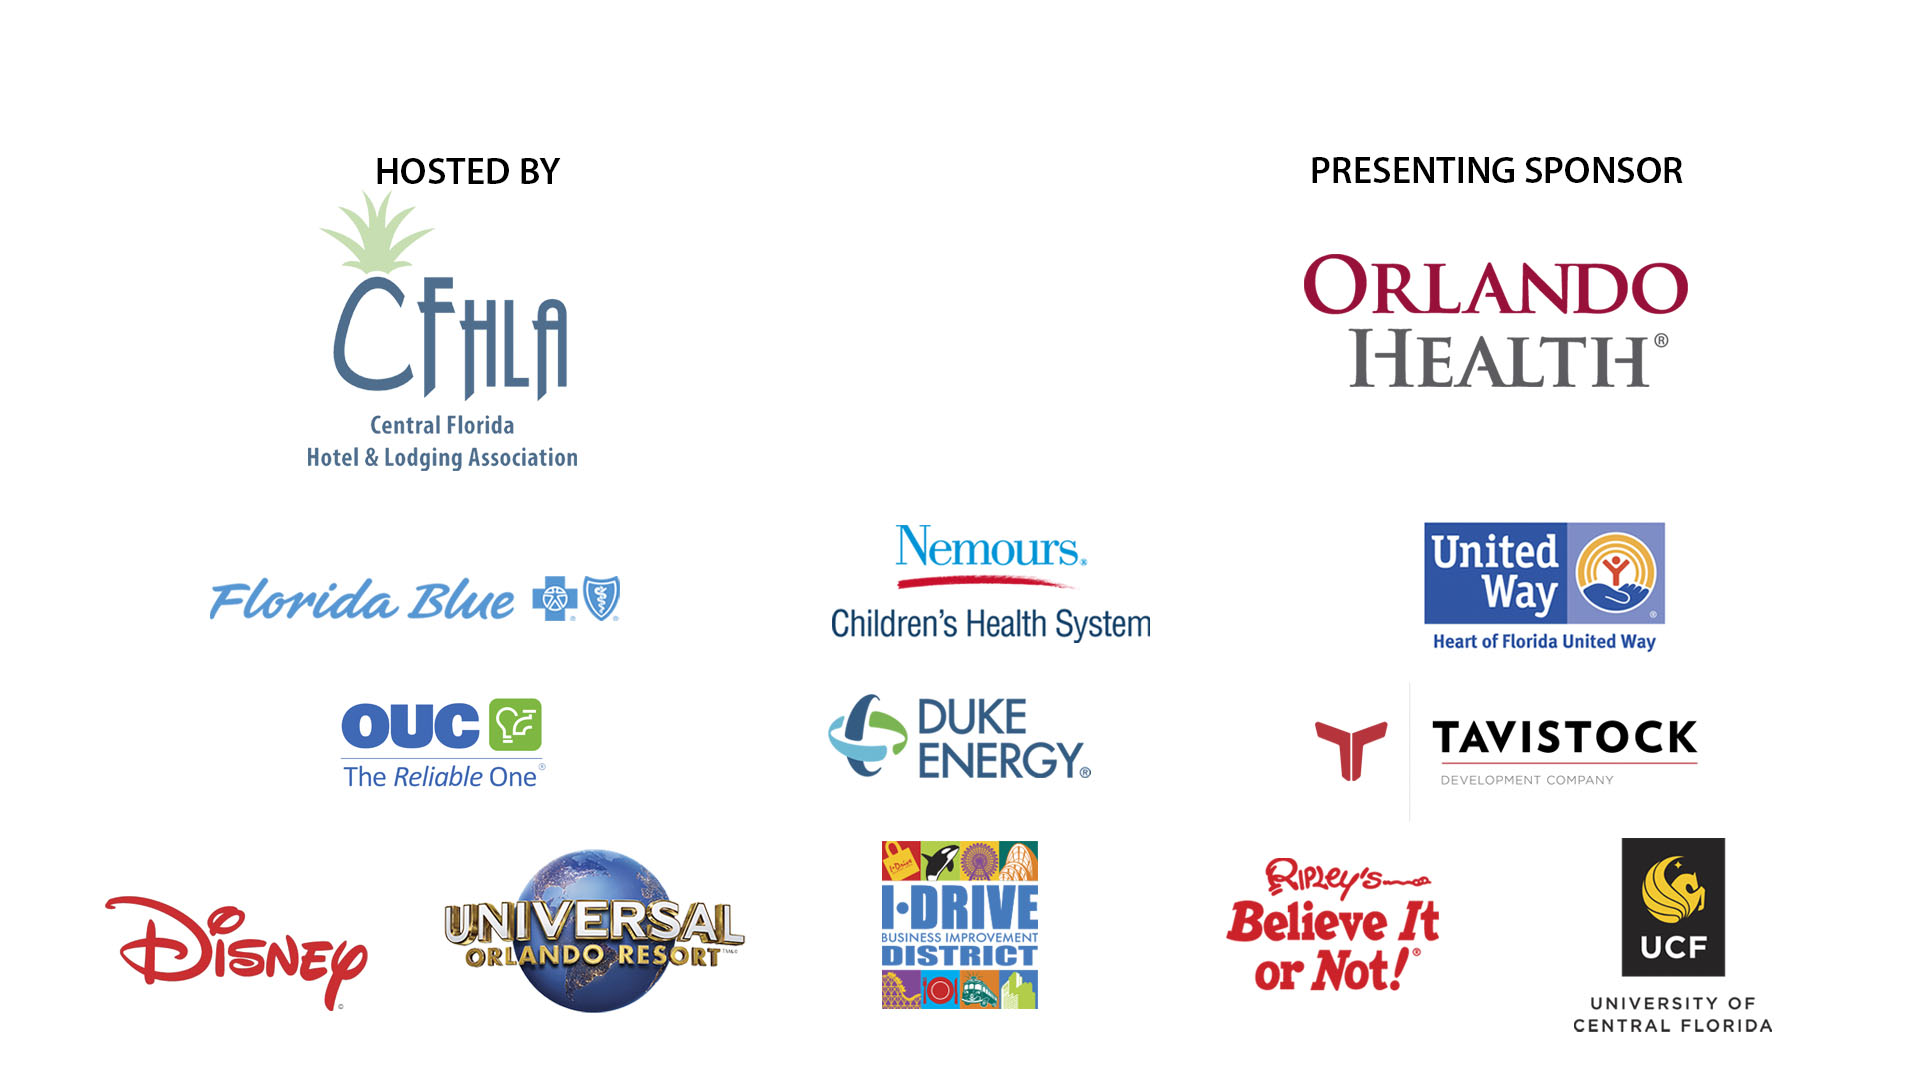 Sponsor logos for Hosting sponsor CFHLA, Presenting sponsor Orlando Health, as well as OUC, Duke Energy, Florida Blue, Nemours Children's Health System, United Way, Tavistock, Disney, Universal Orlando Resort, I-Drive Business Improvement District, Ripley's Believe it or Not!, and the University of Central Florida.